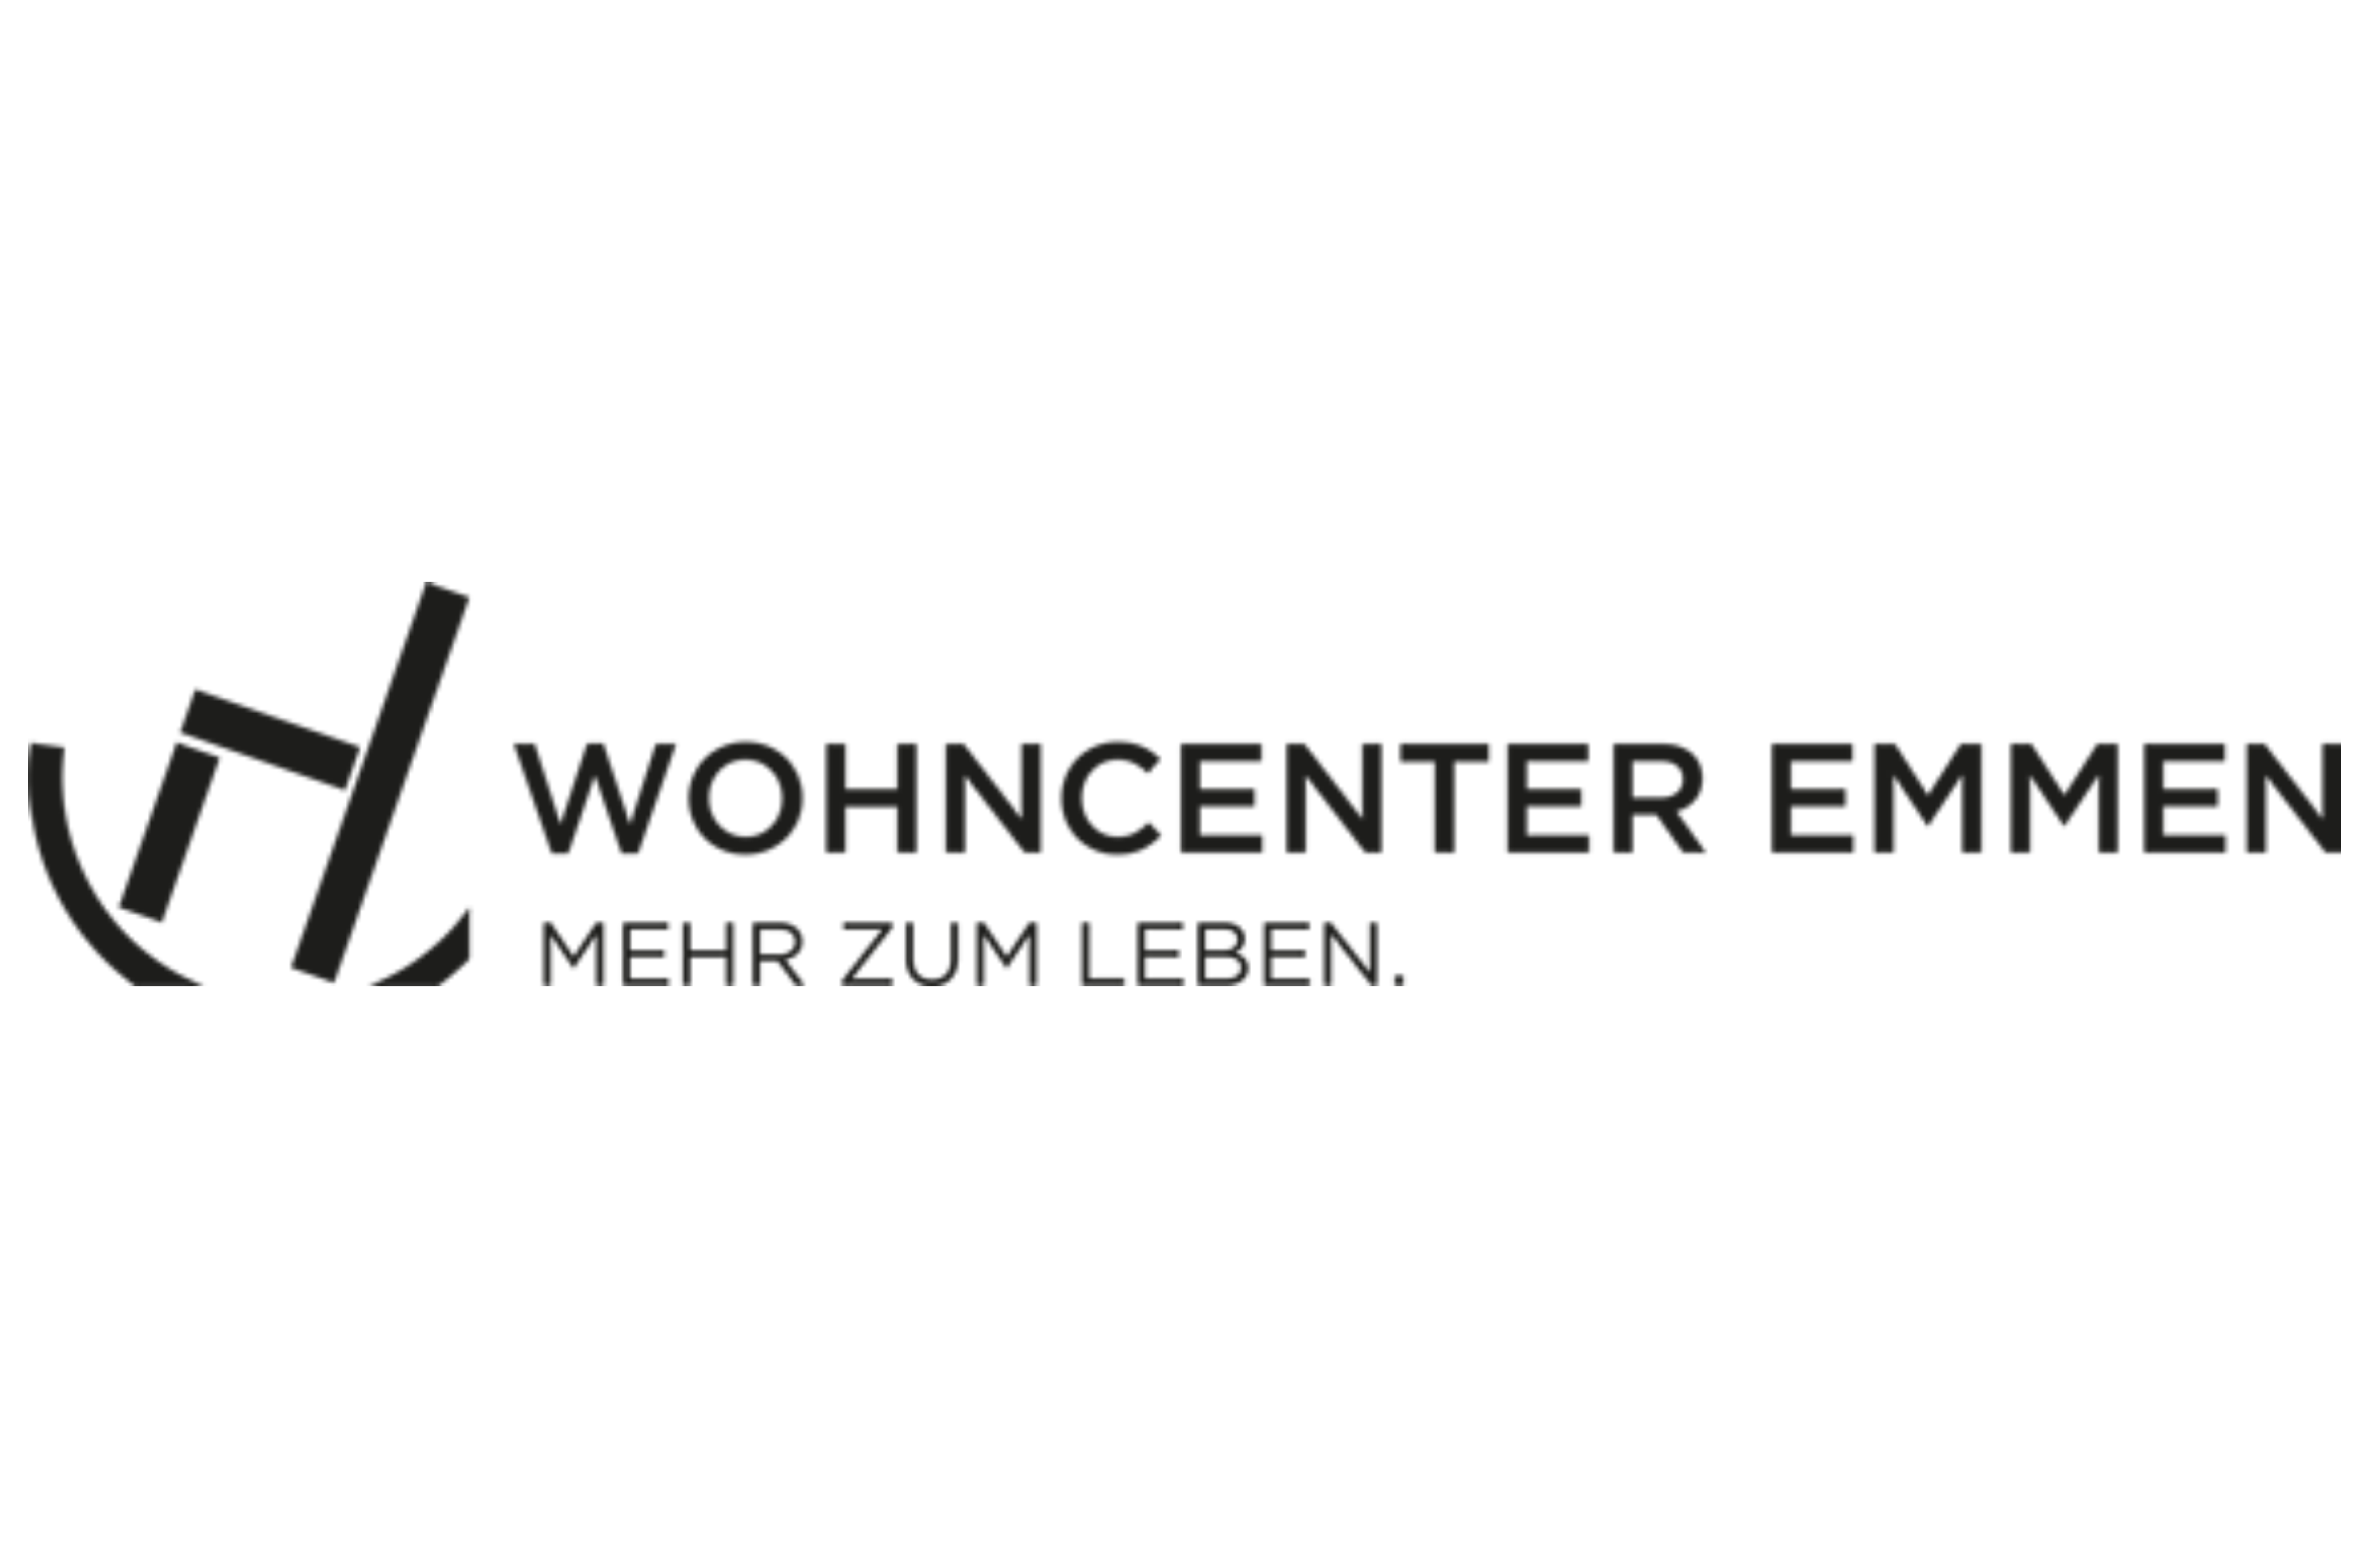 Eroeffnung-Wohn-Center-Emmen-Luzern-Eventagentur-Emotion-Company-Referenzen